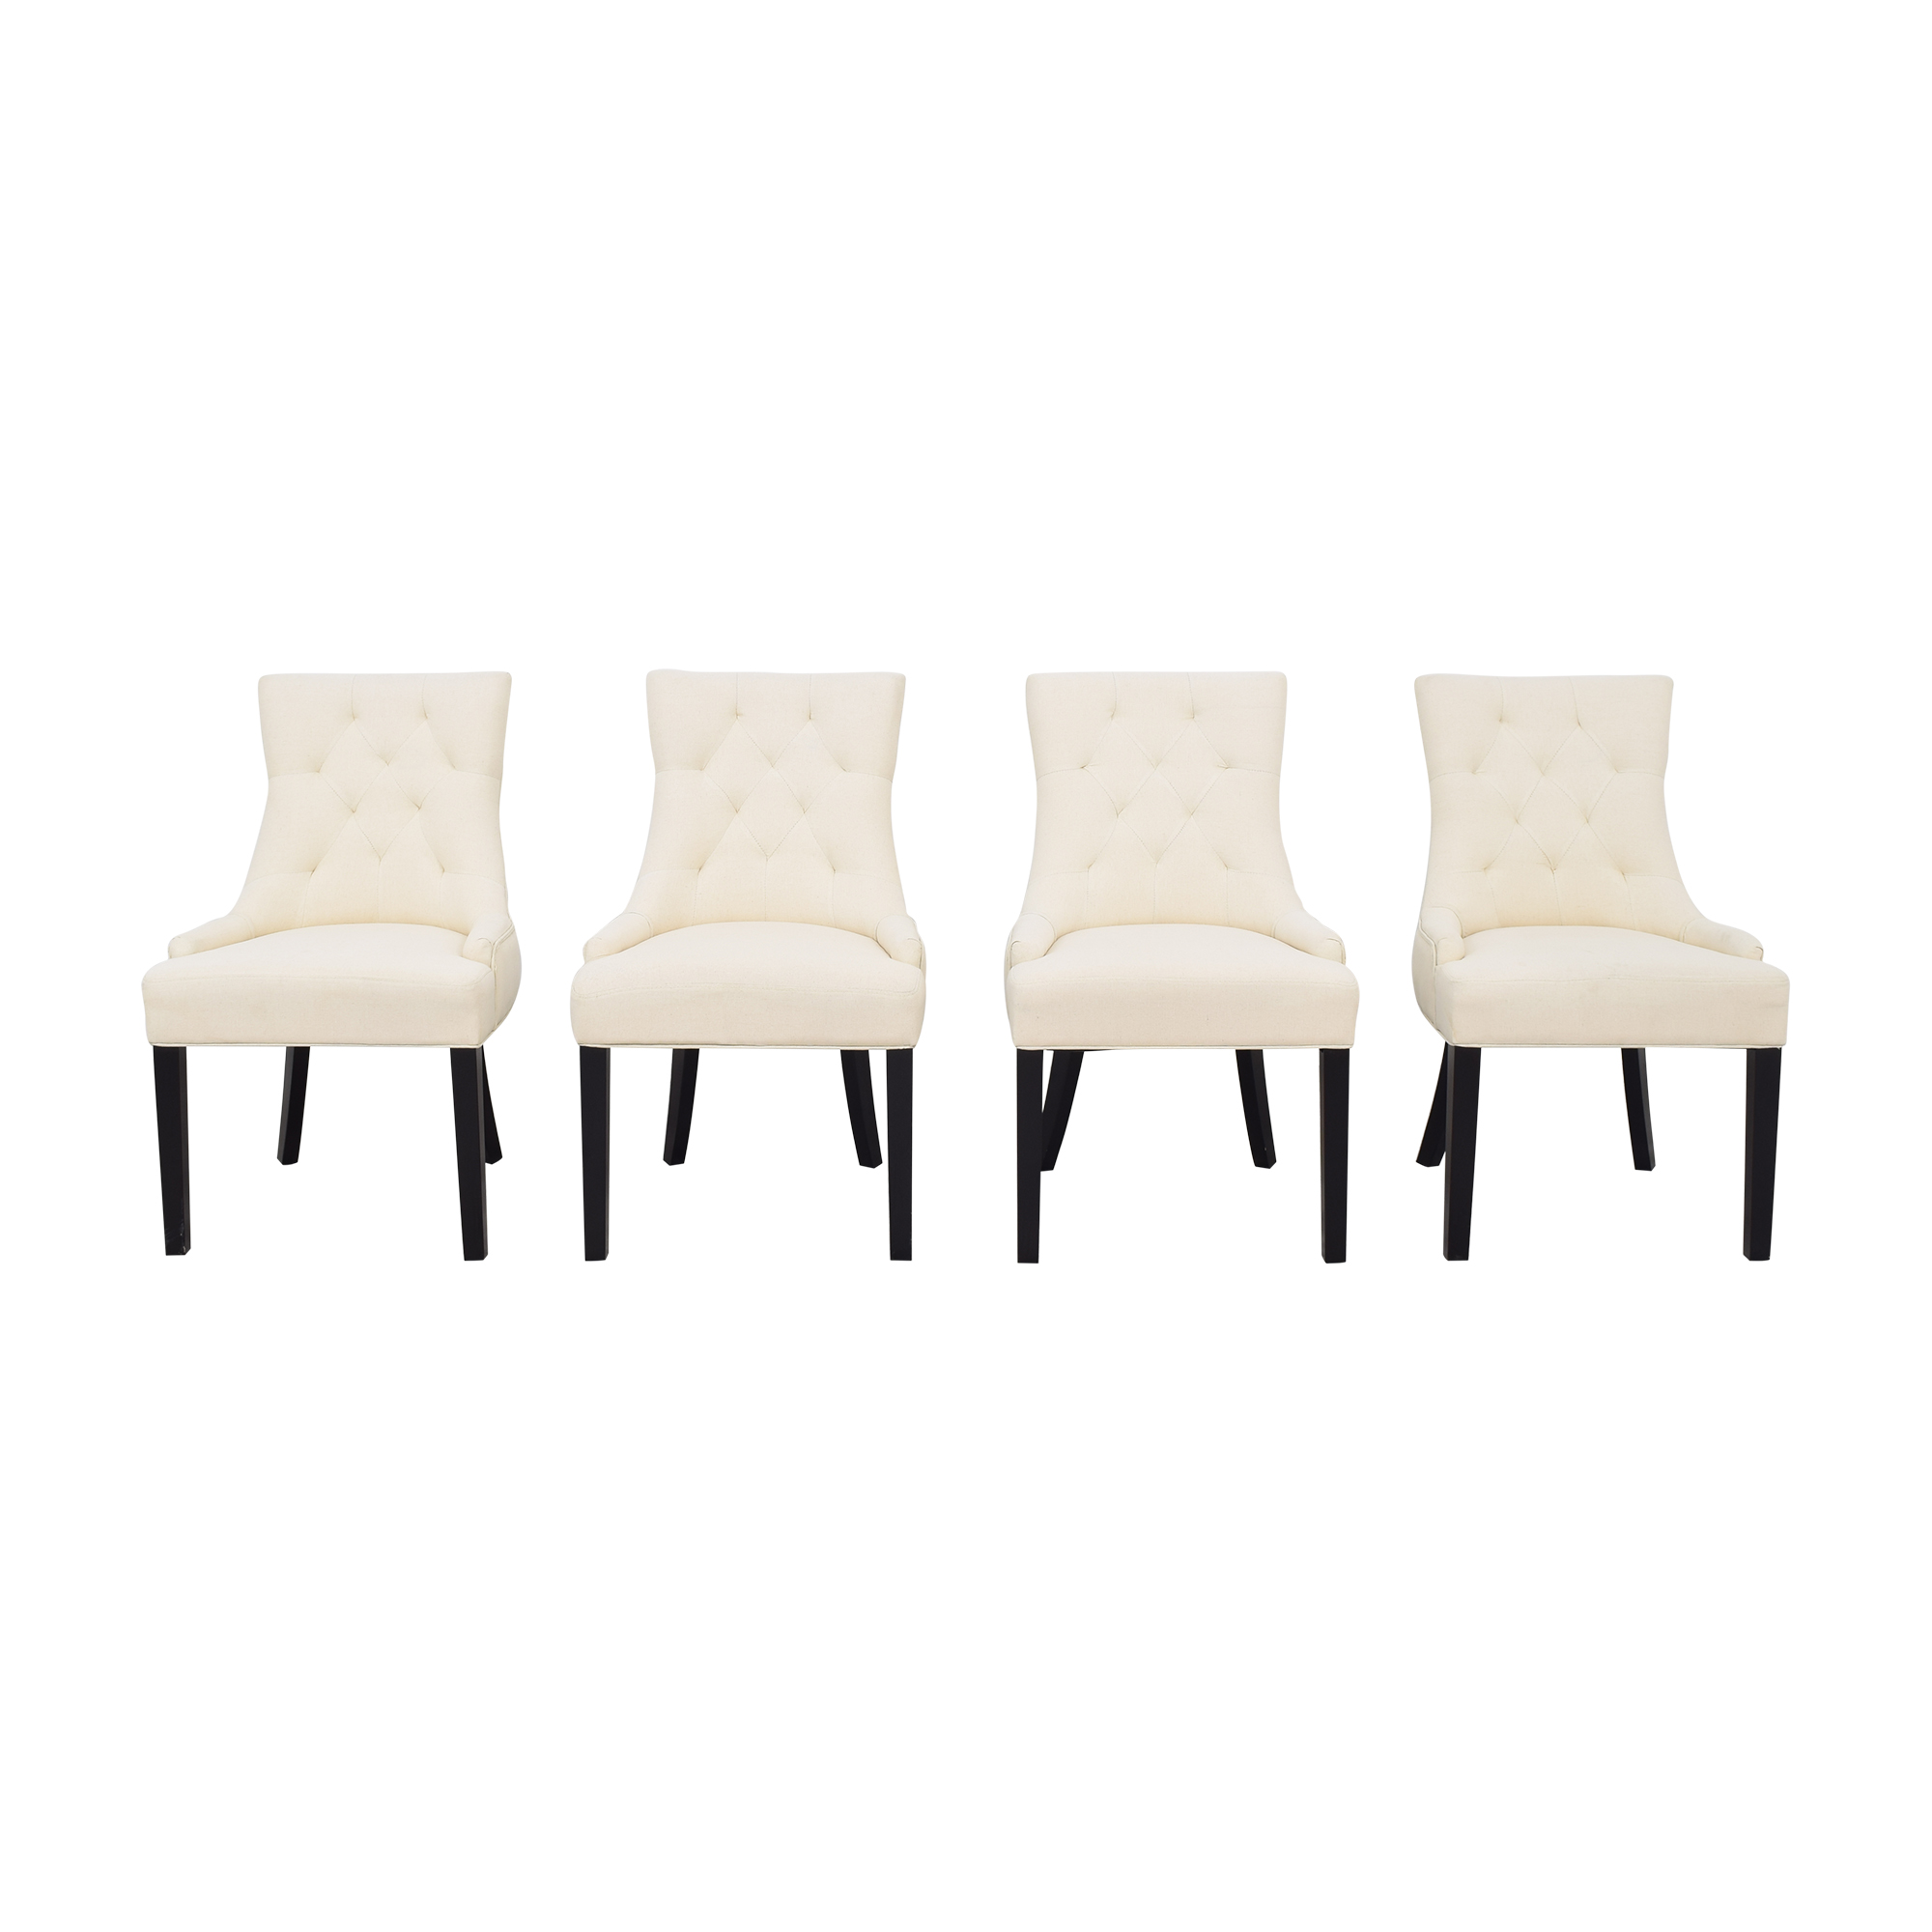 Upholstered Dining Chairs off white & black